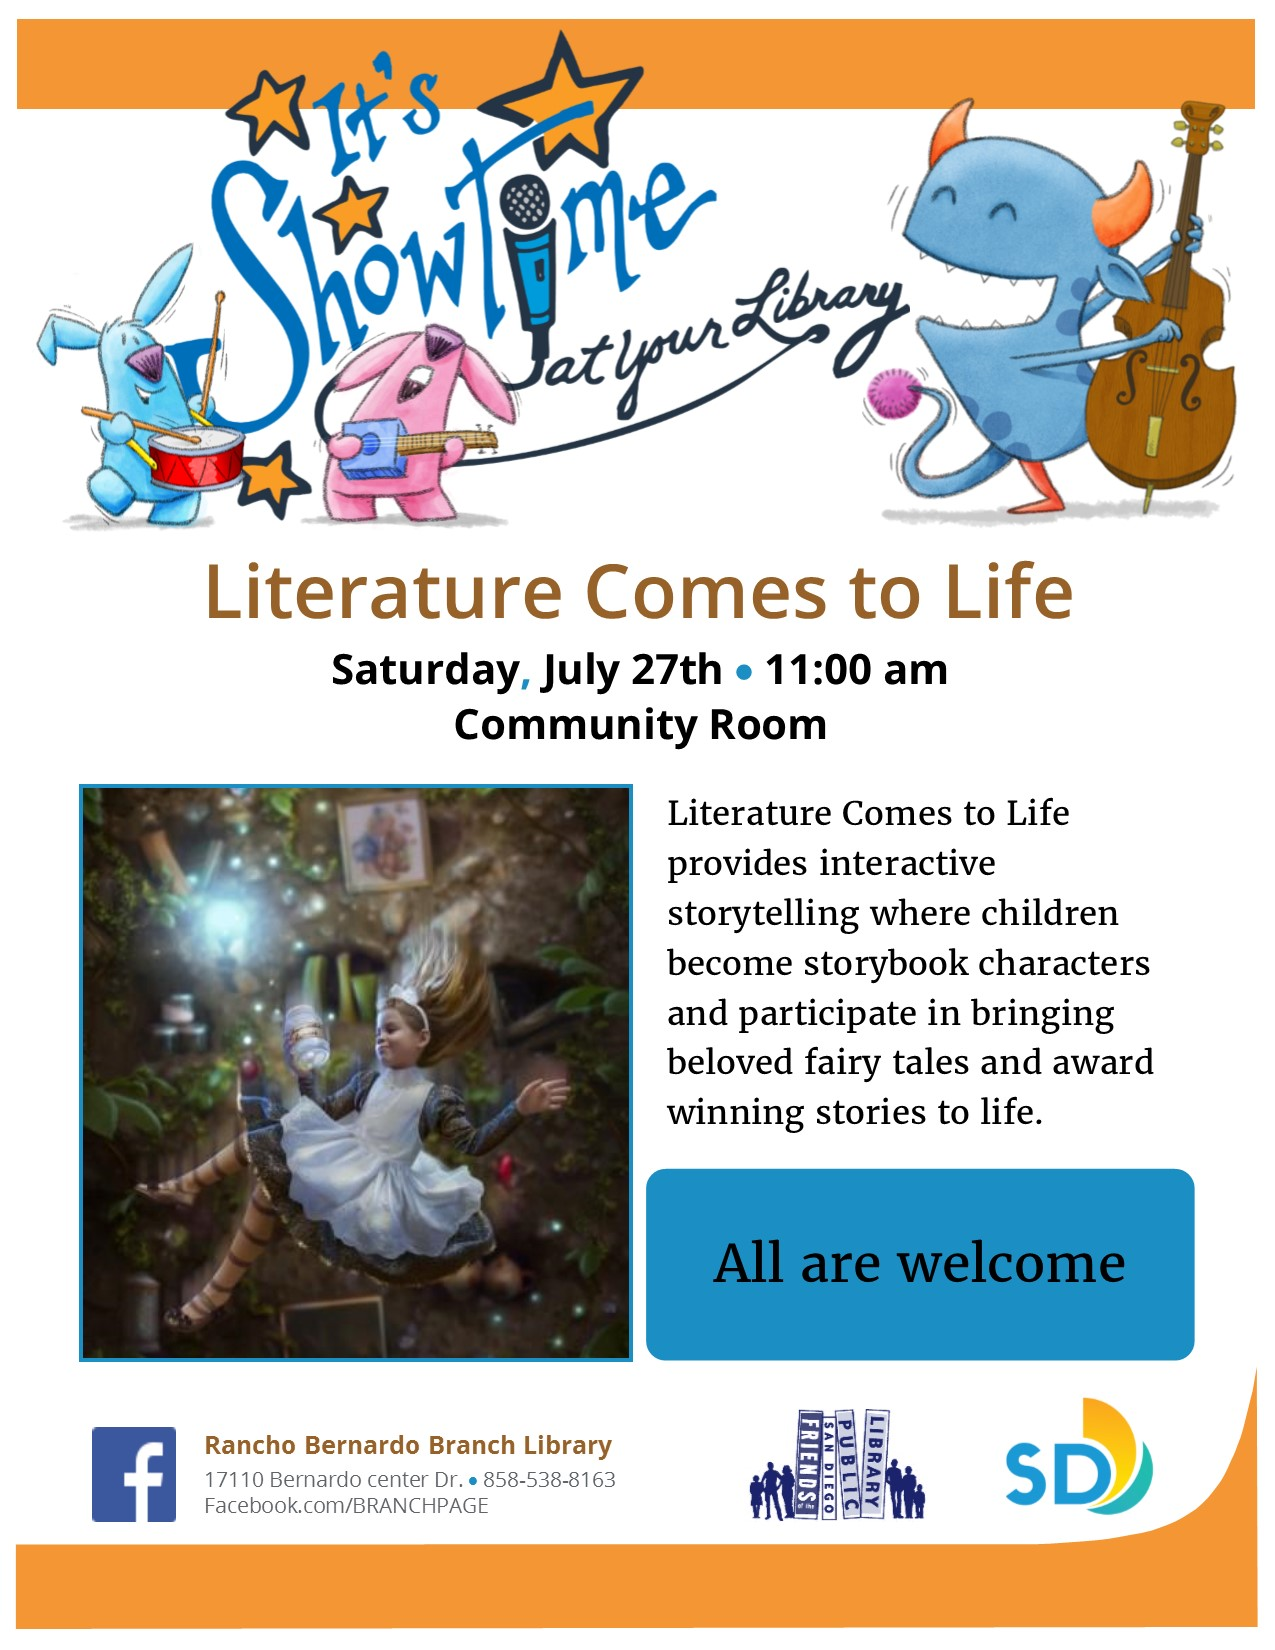 SRP 2019 Literature comes to life flyer